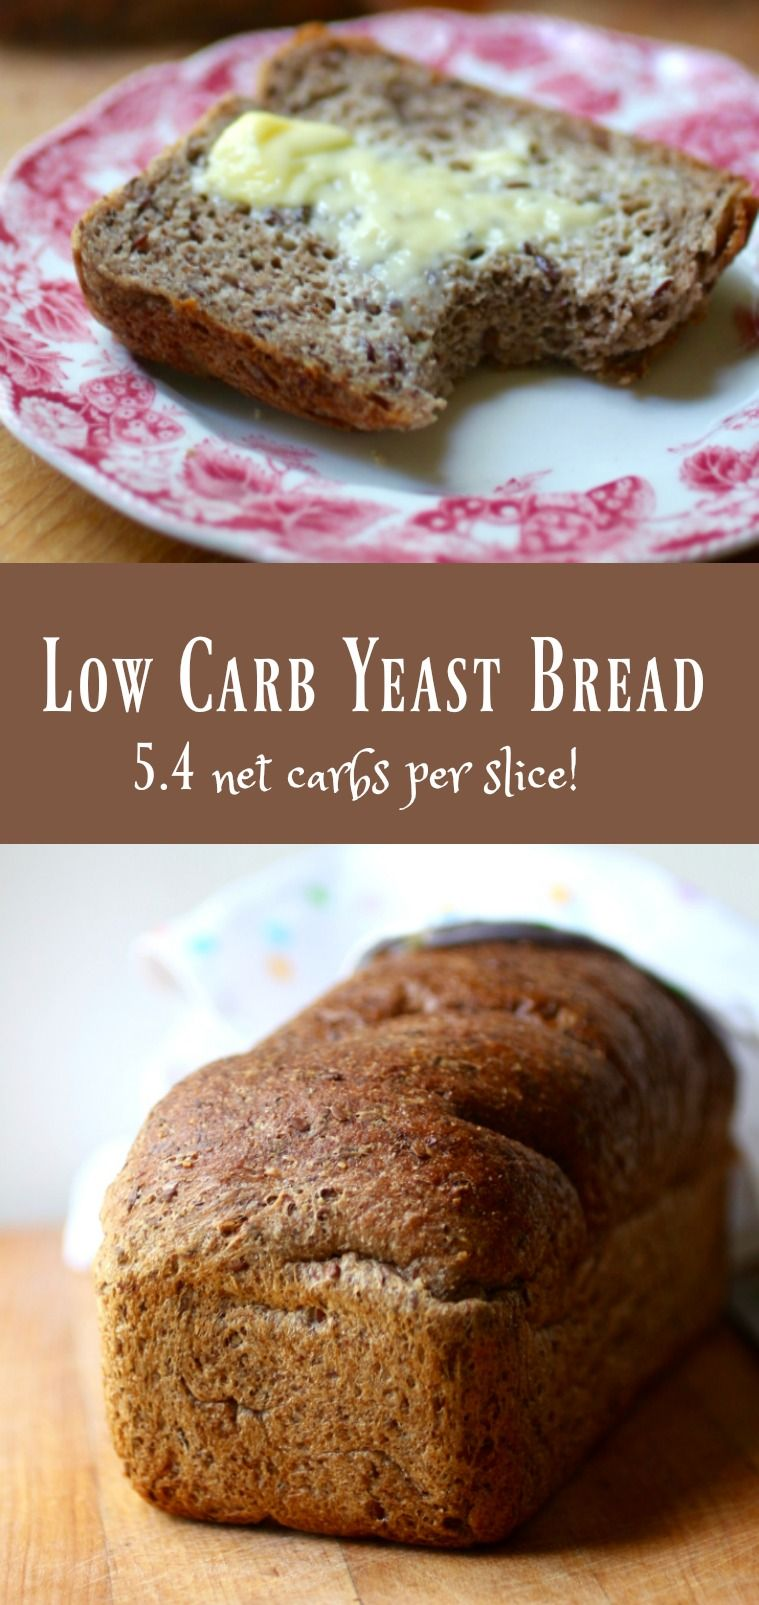 Keto Yeast Bread Recipe Easy Low Carb Lowcarb Ology Recipe Lowest Carb Bread Recipe Low Carb Bread Bread Machine Recipes